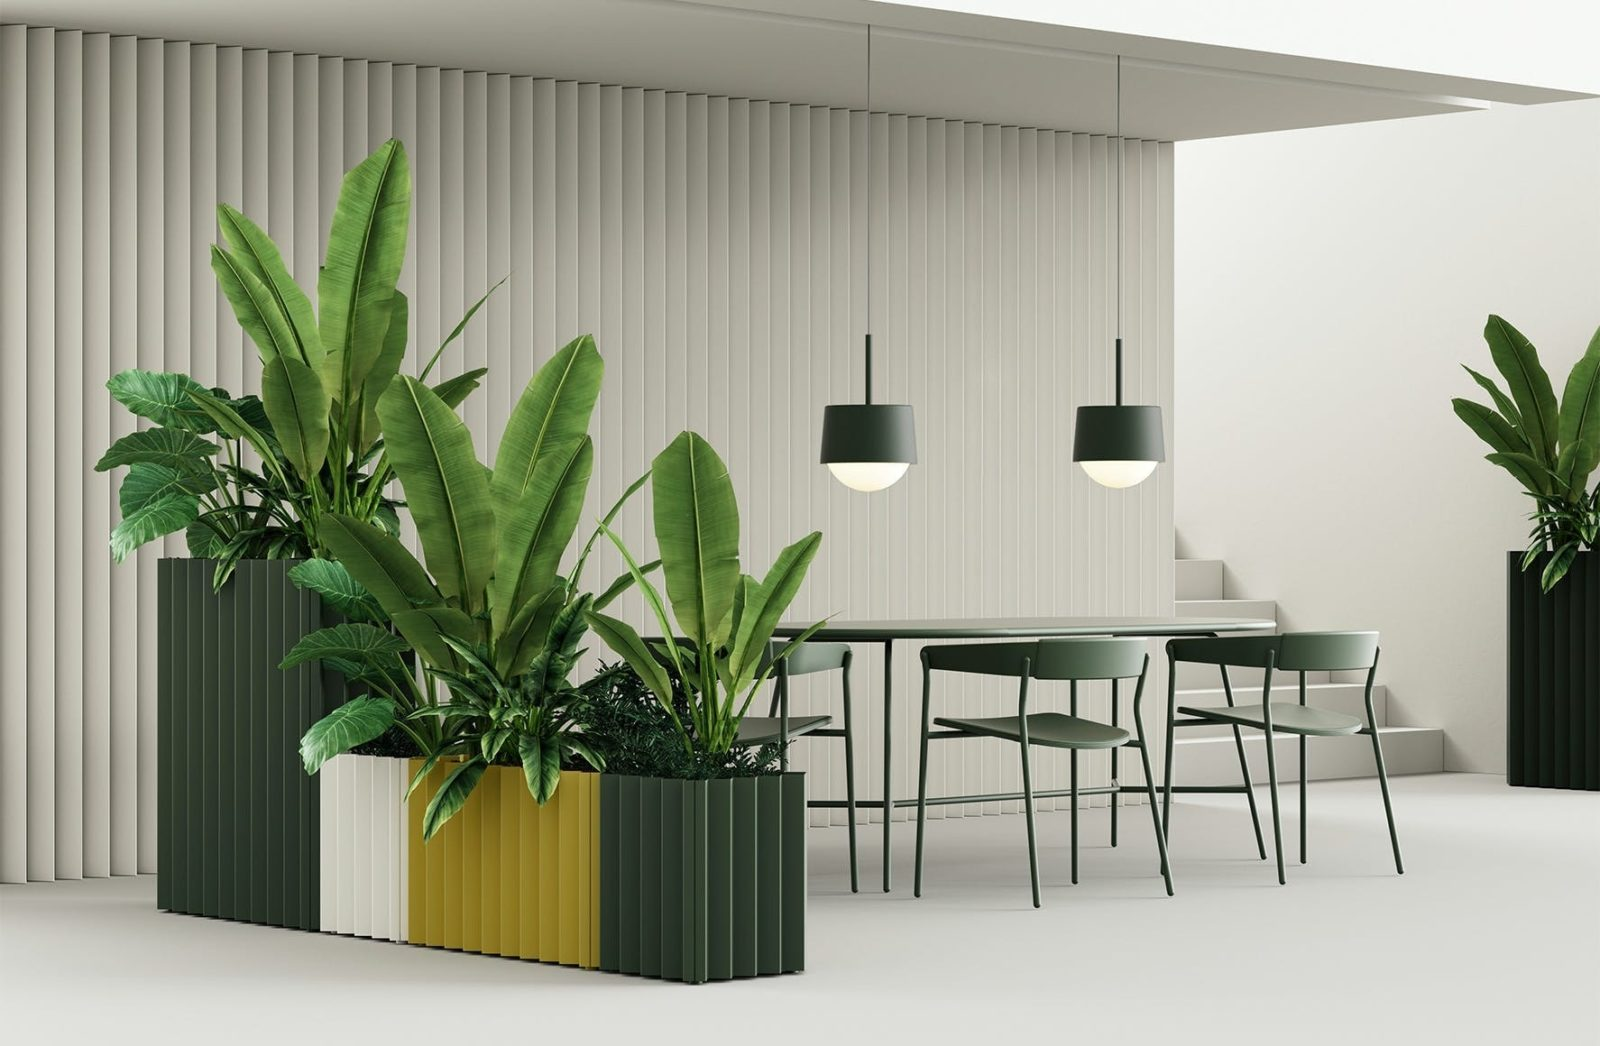 Grey, white, and yellow planters with tall green plants in front of a long table surrounded by chairs.